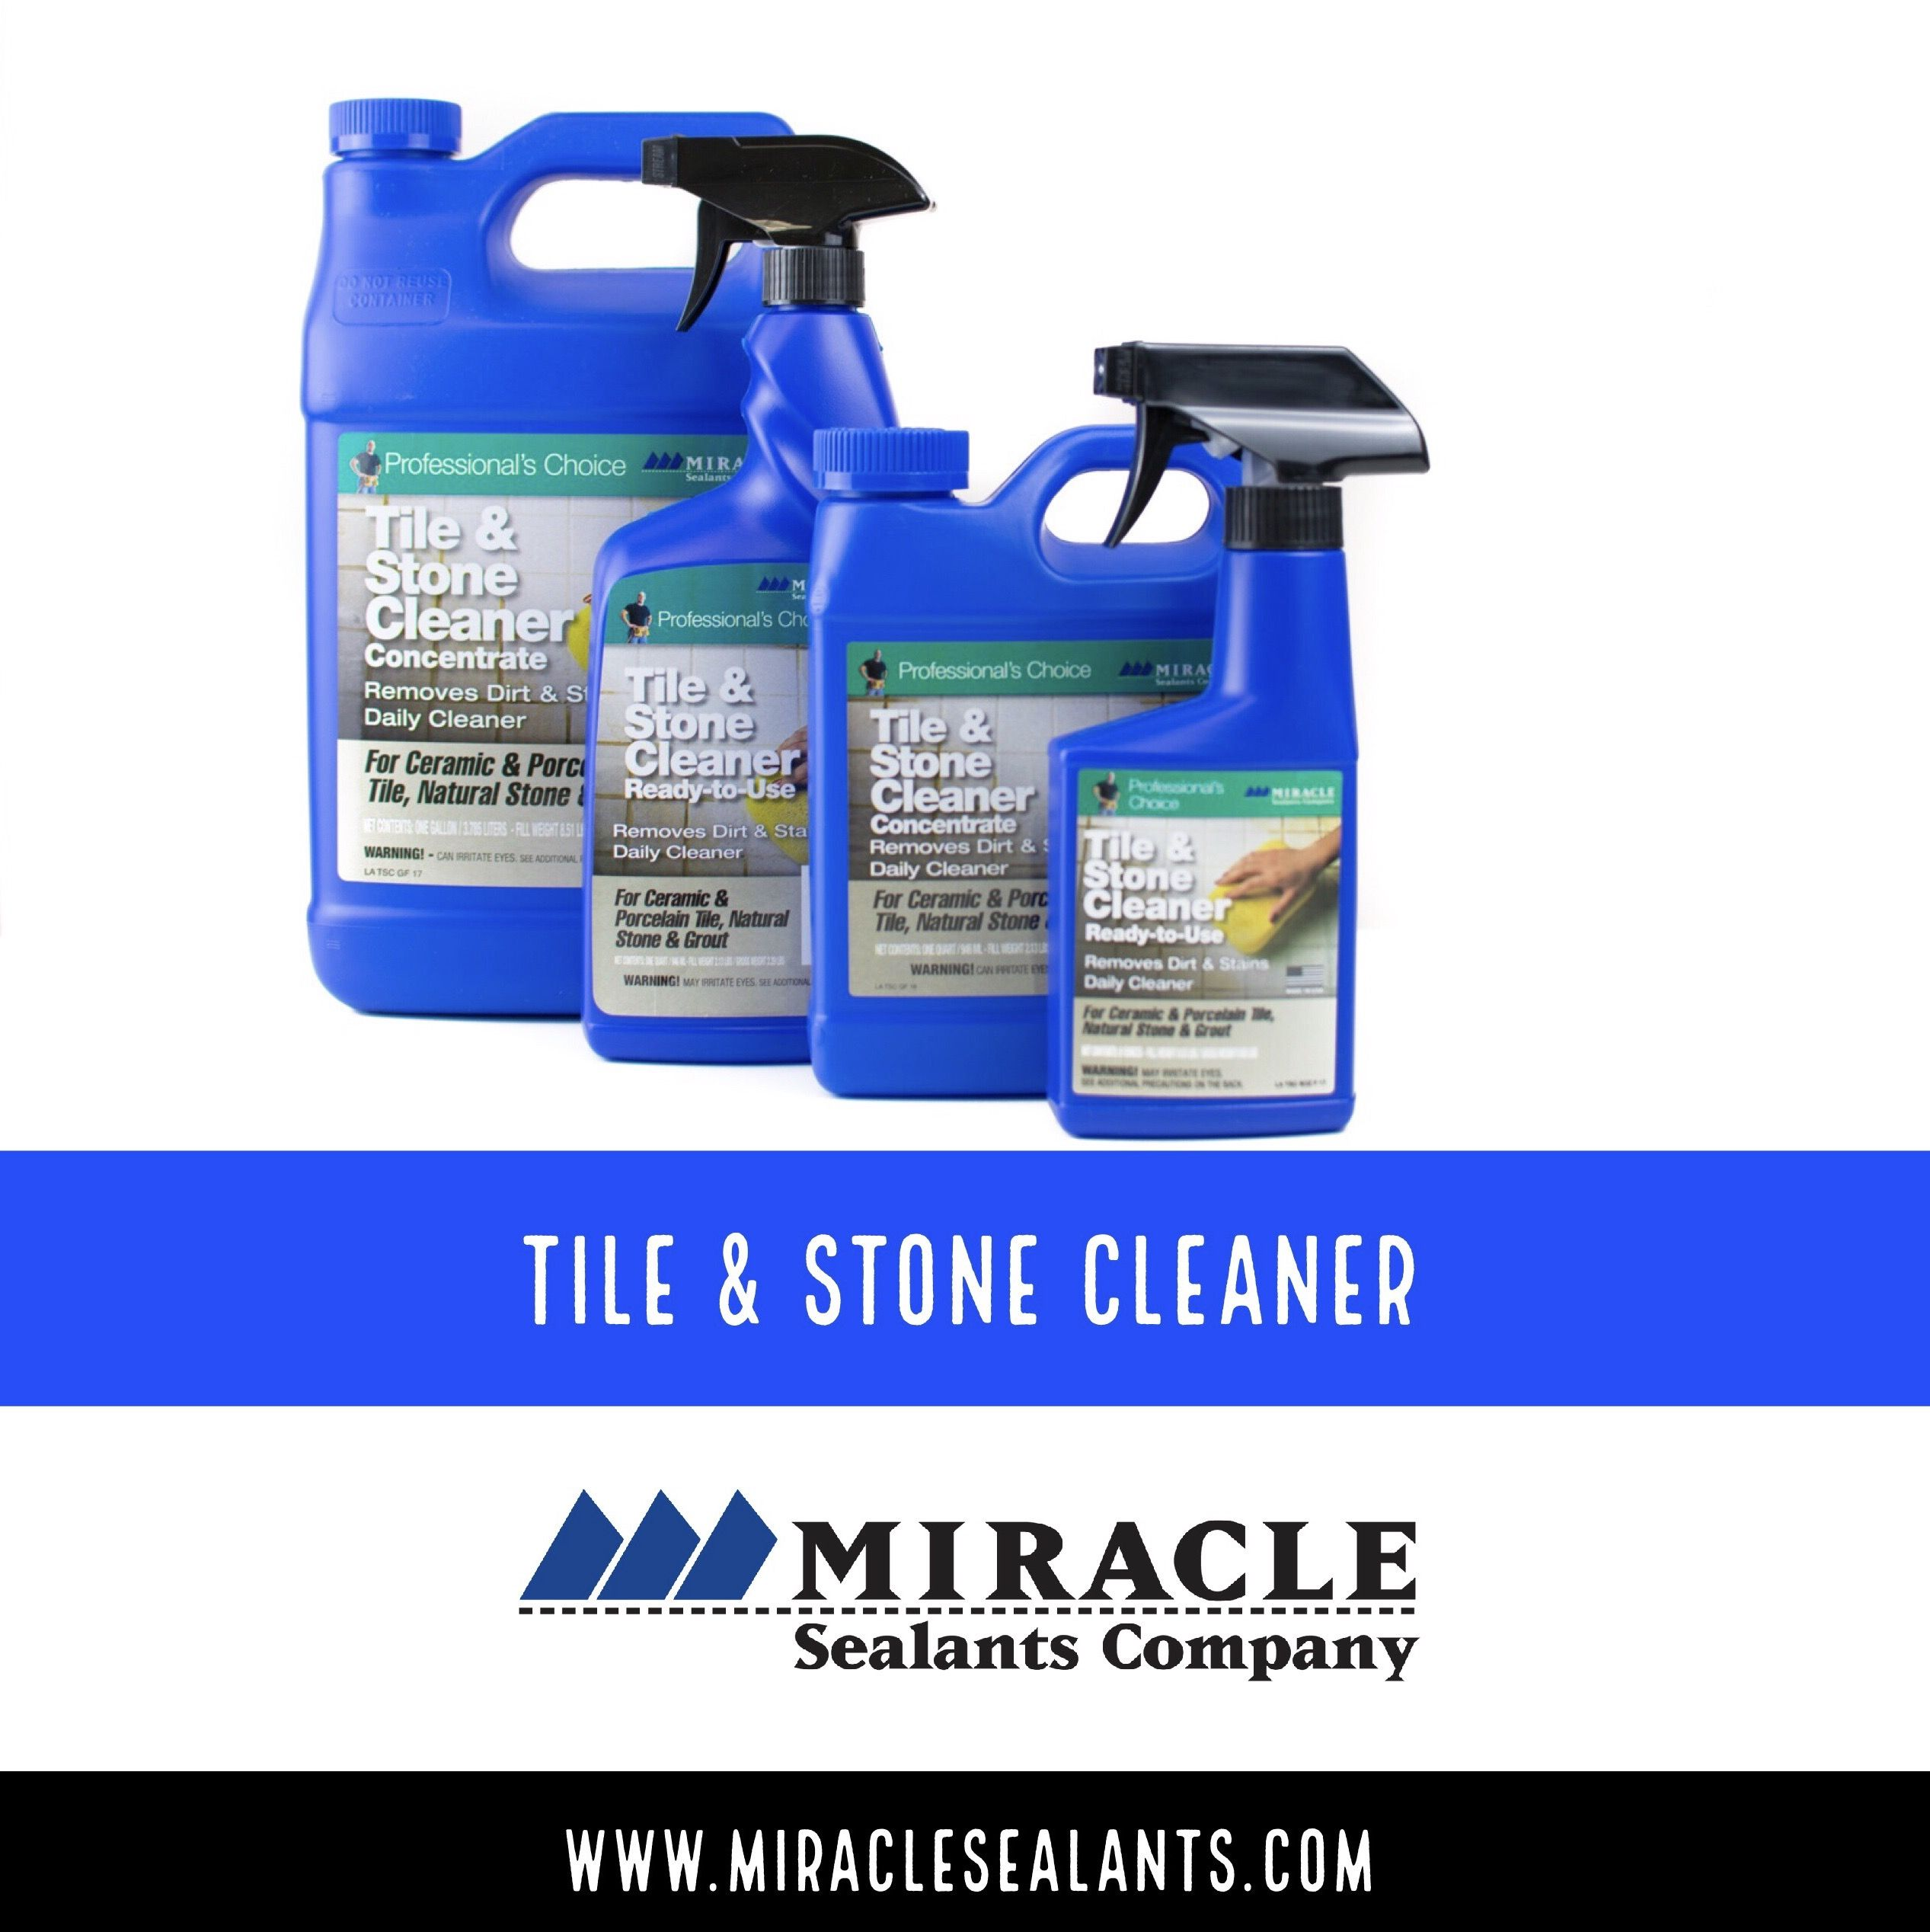 tile stone cleaner is a ph neutral